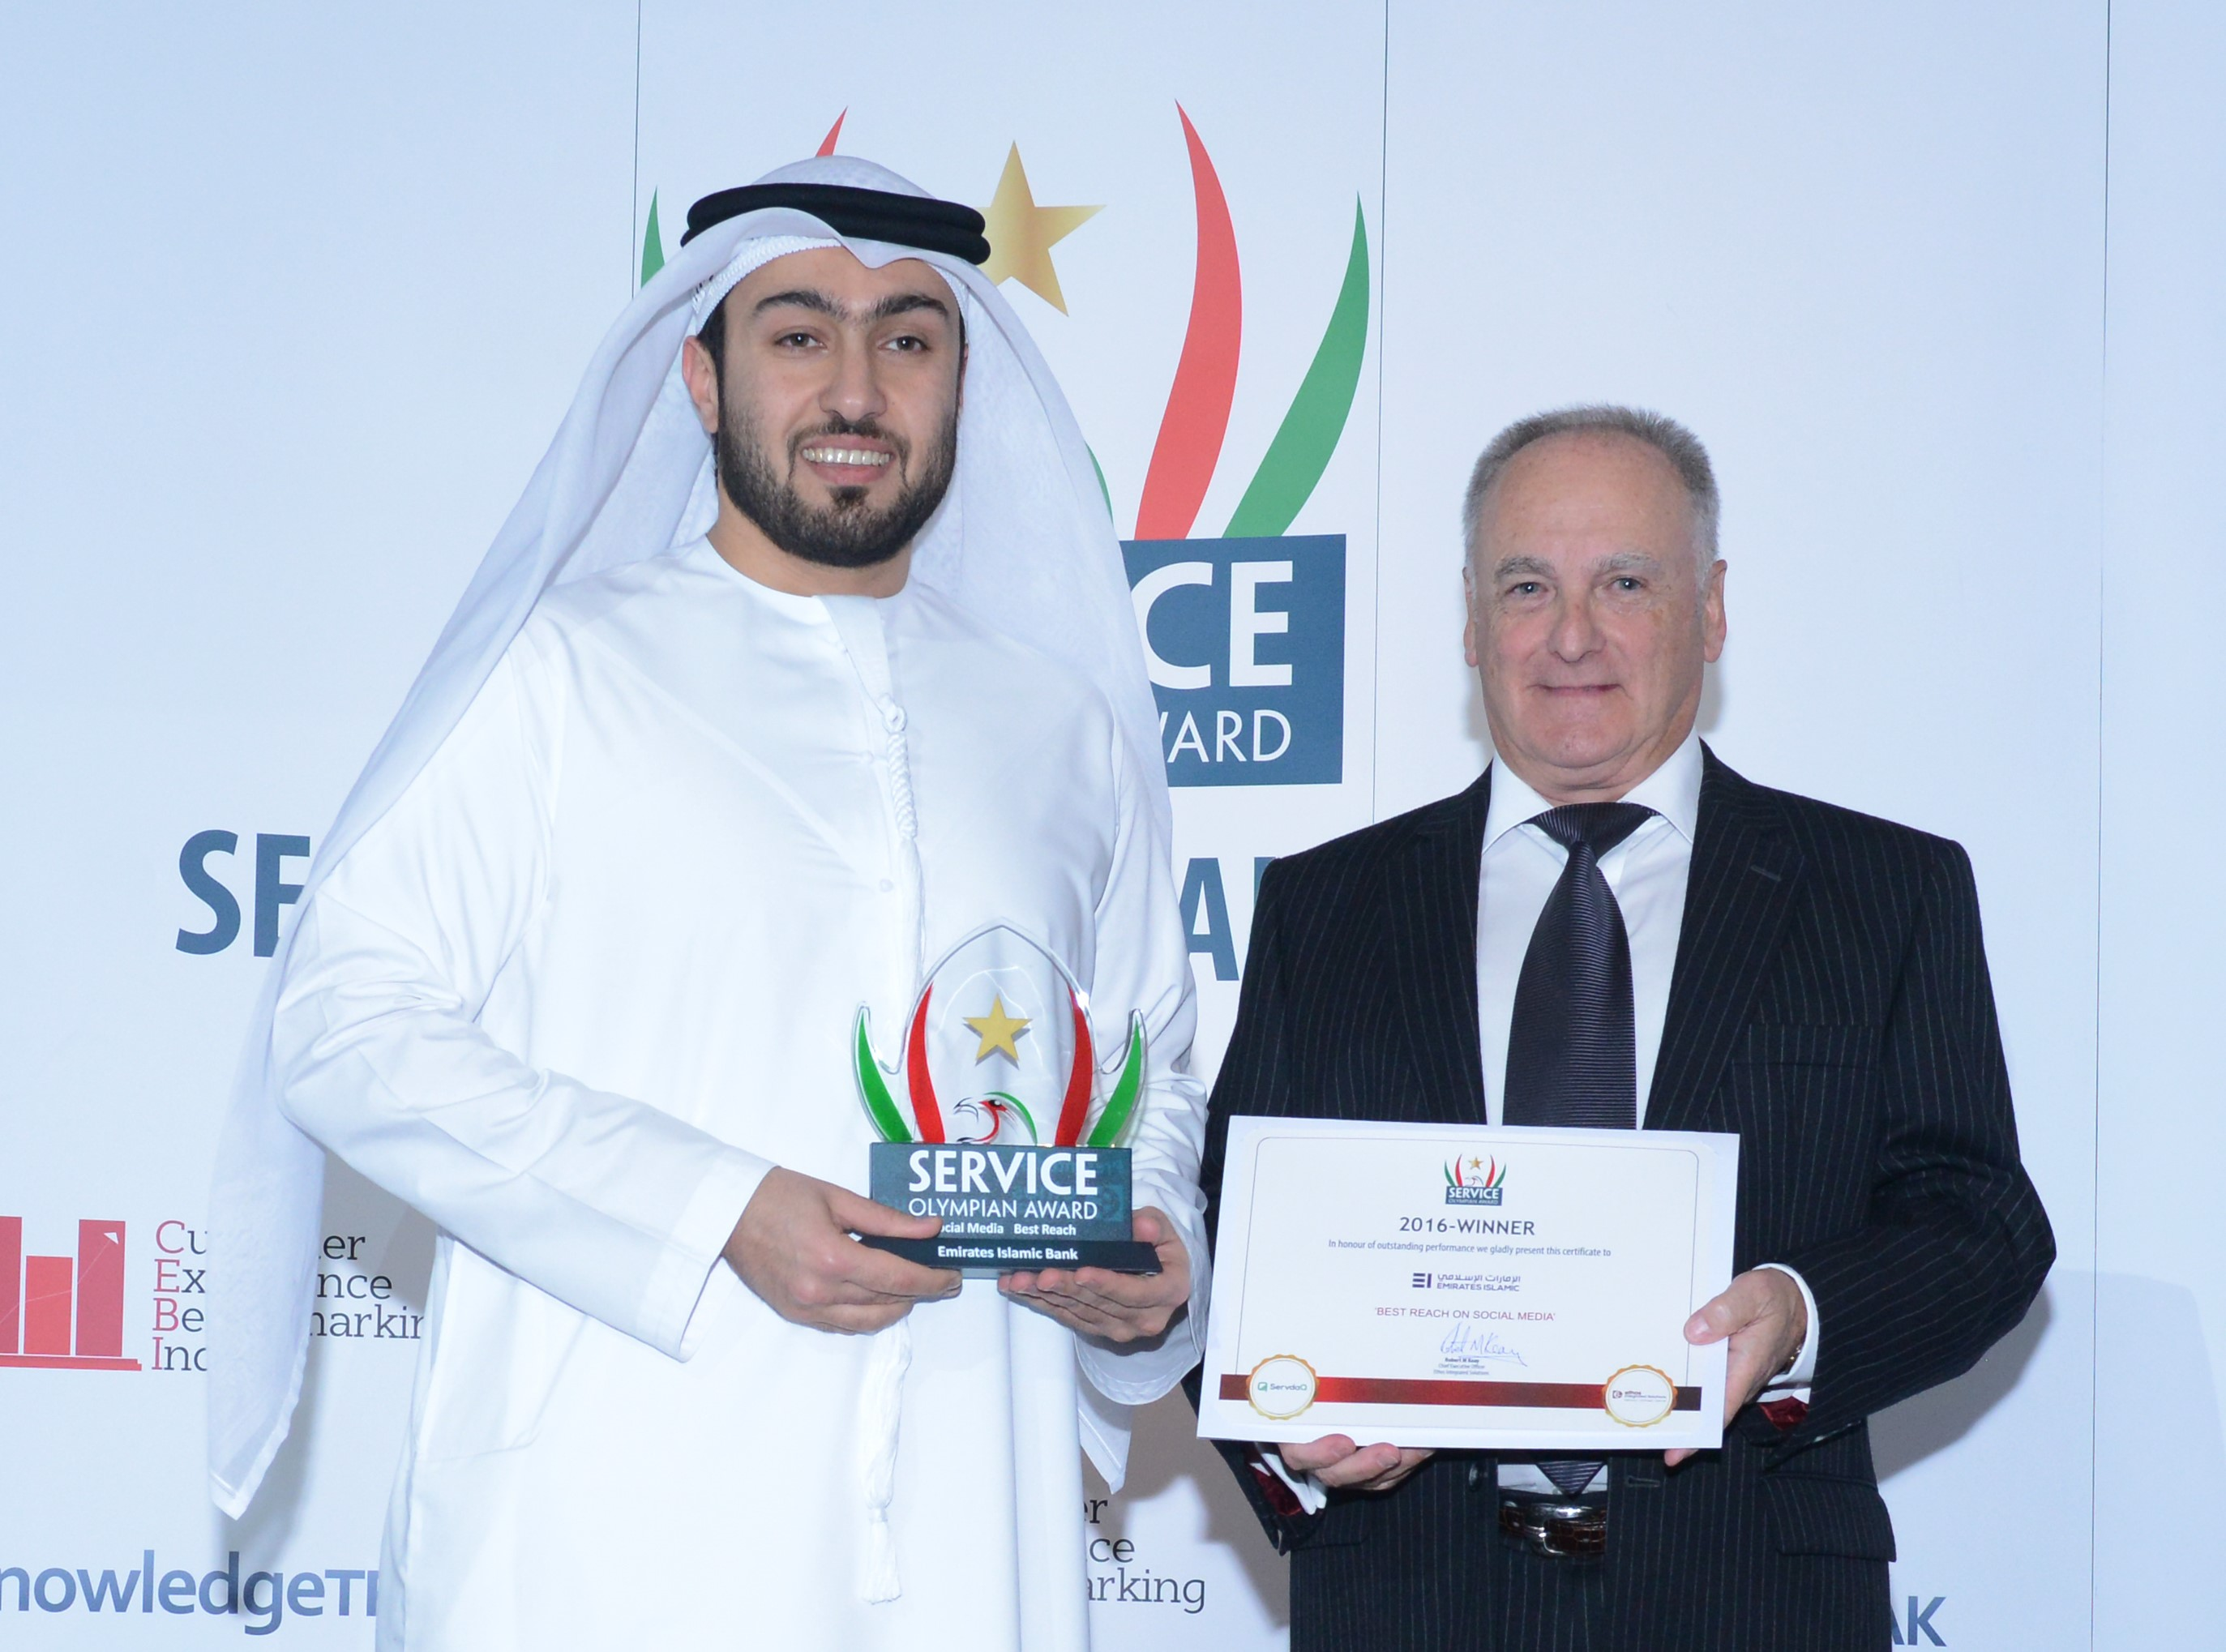 Emirates Islamic wins big at the 2016 Service Olympian Awards